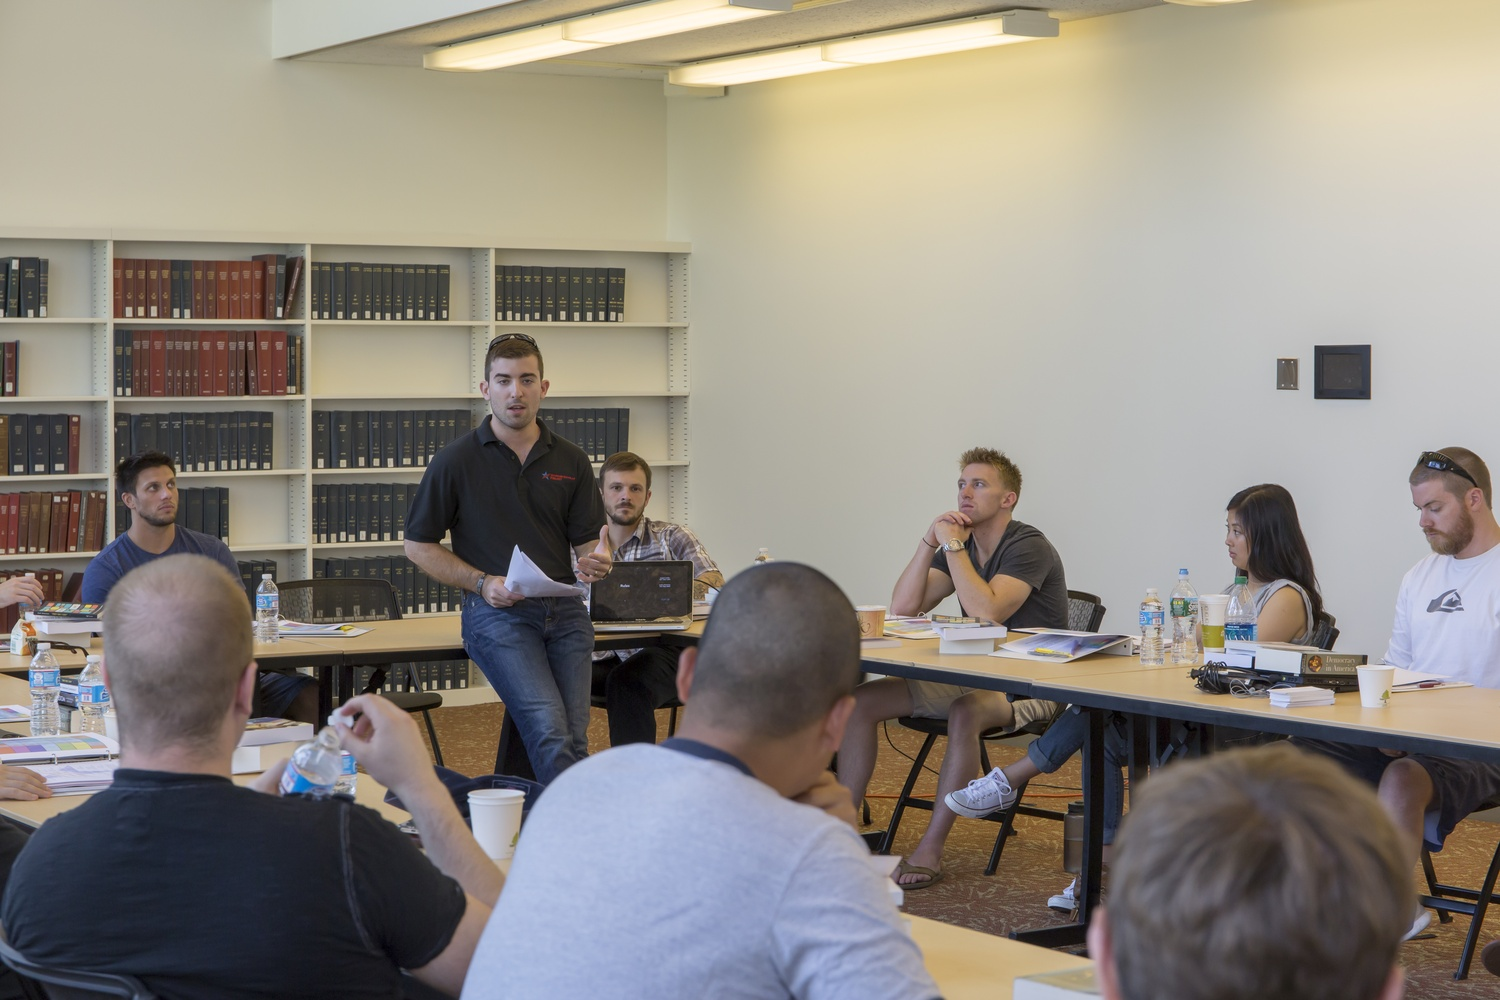 Logan Leslie '16, program director of the Warrior-Scholar Project at Harvard and a former Green Beret, speaks to participants of the Warrior-Scholar Project.